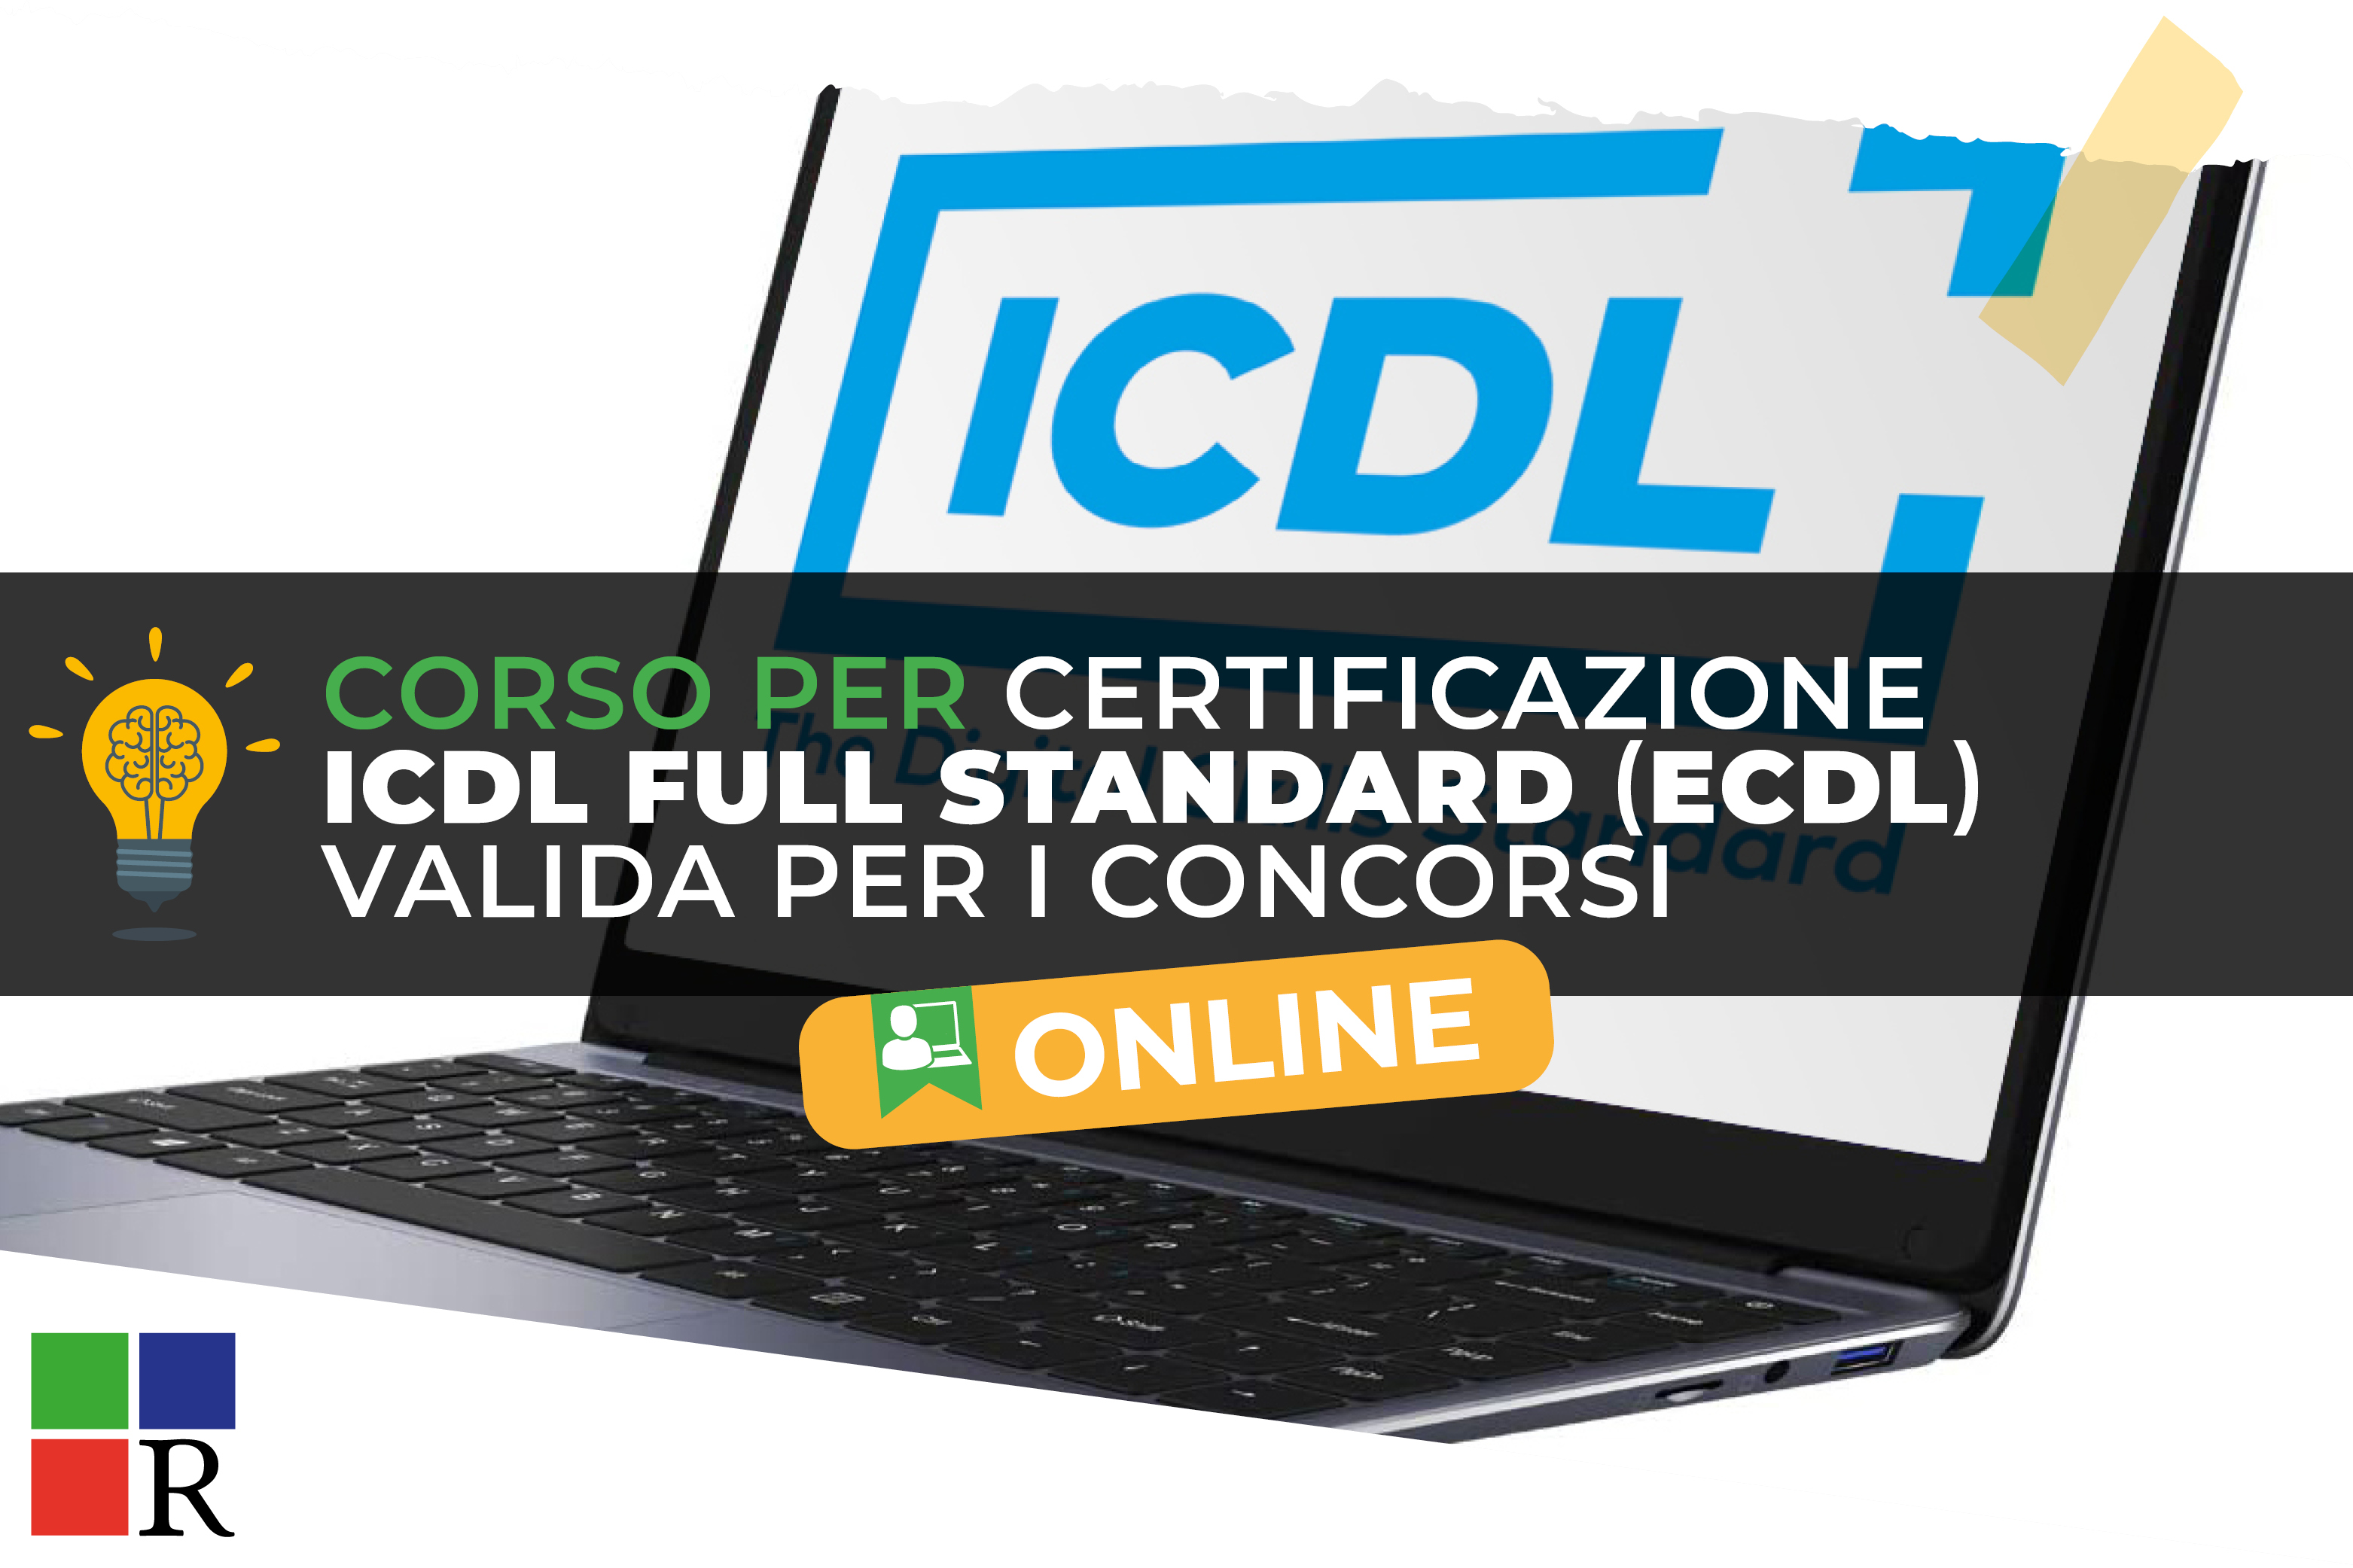 corso ICDL full standard online